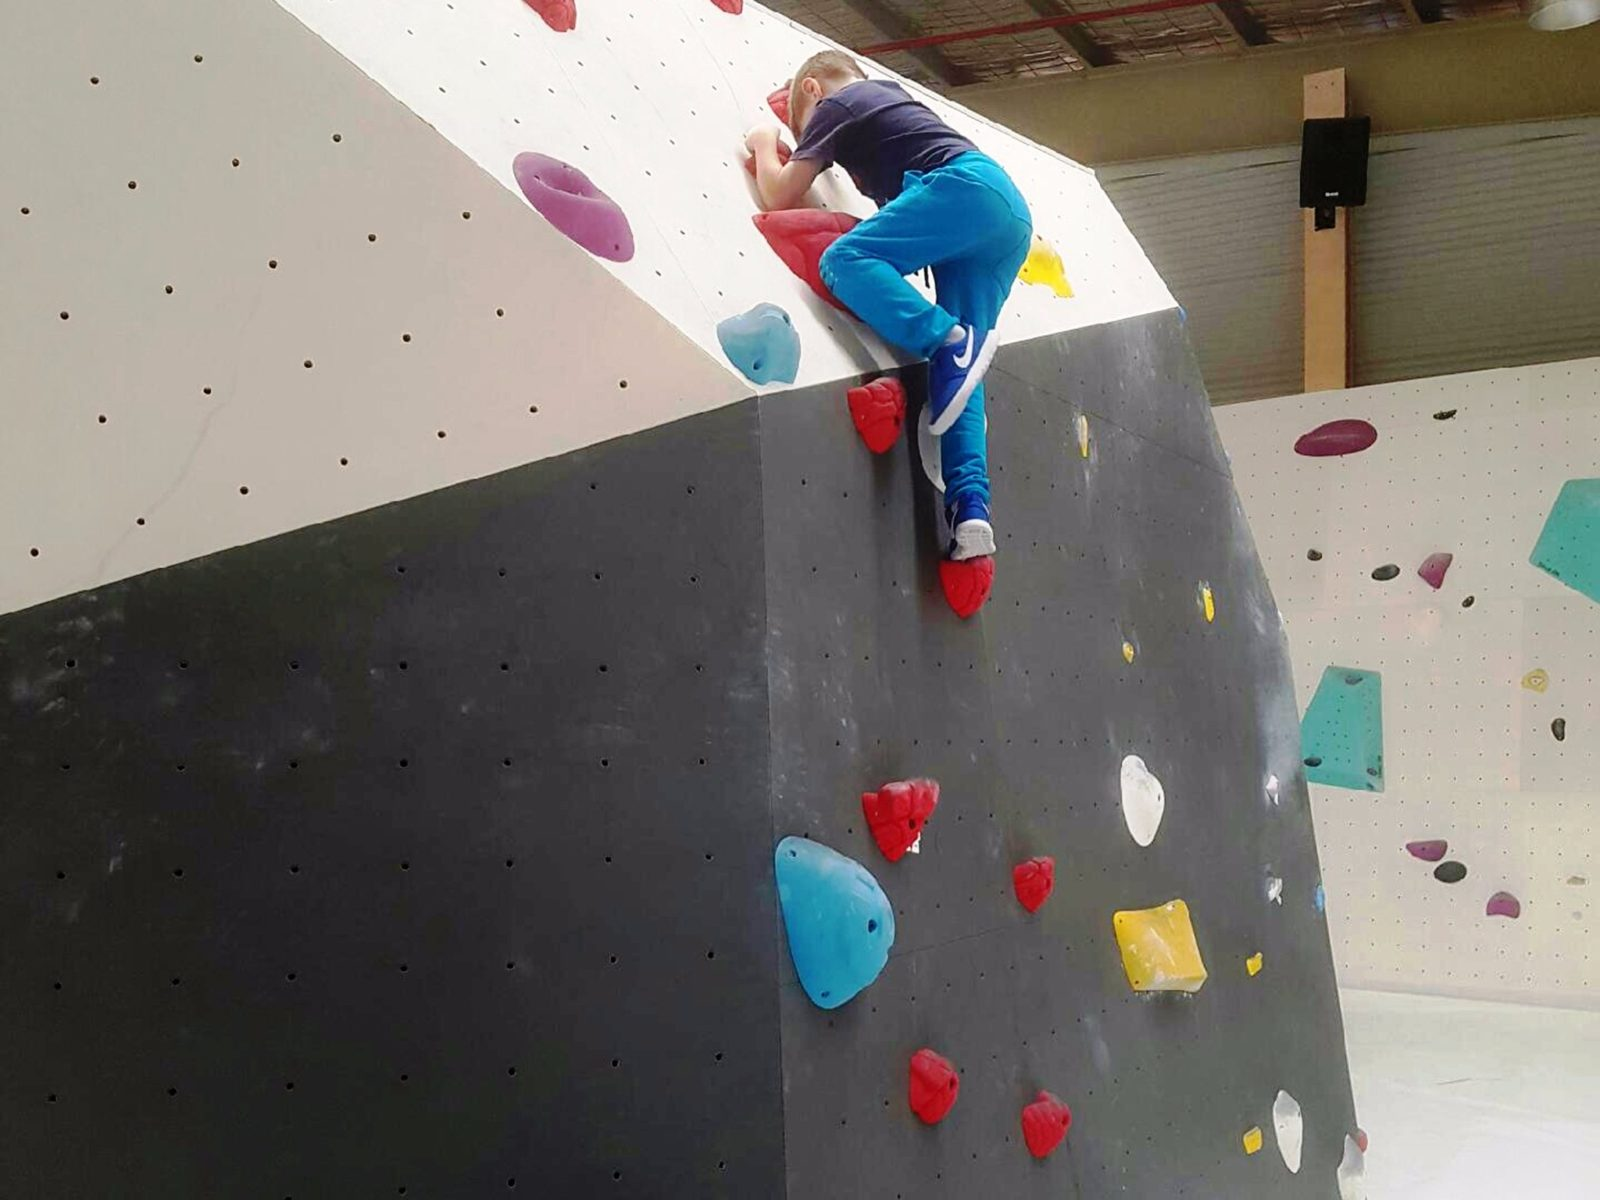 Young boy climbing on a bouldering wall